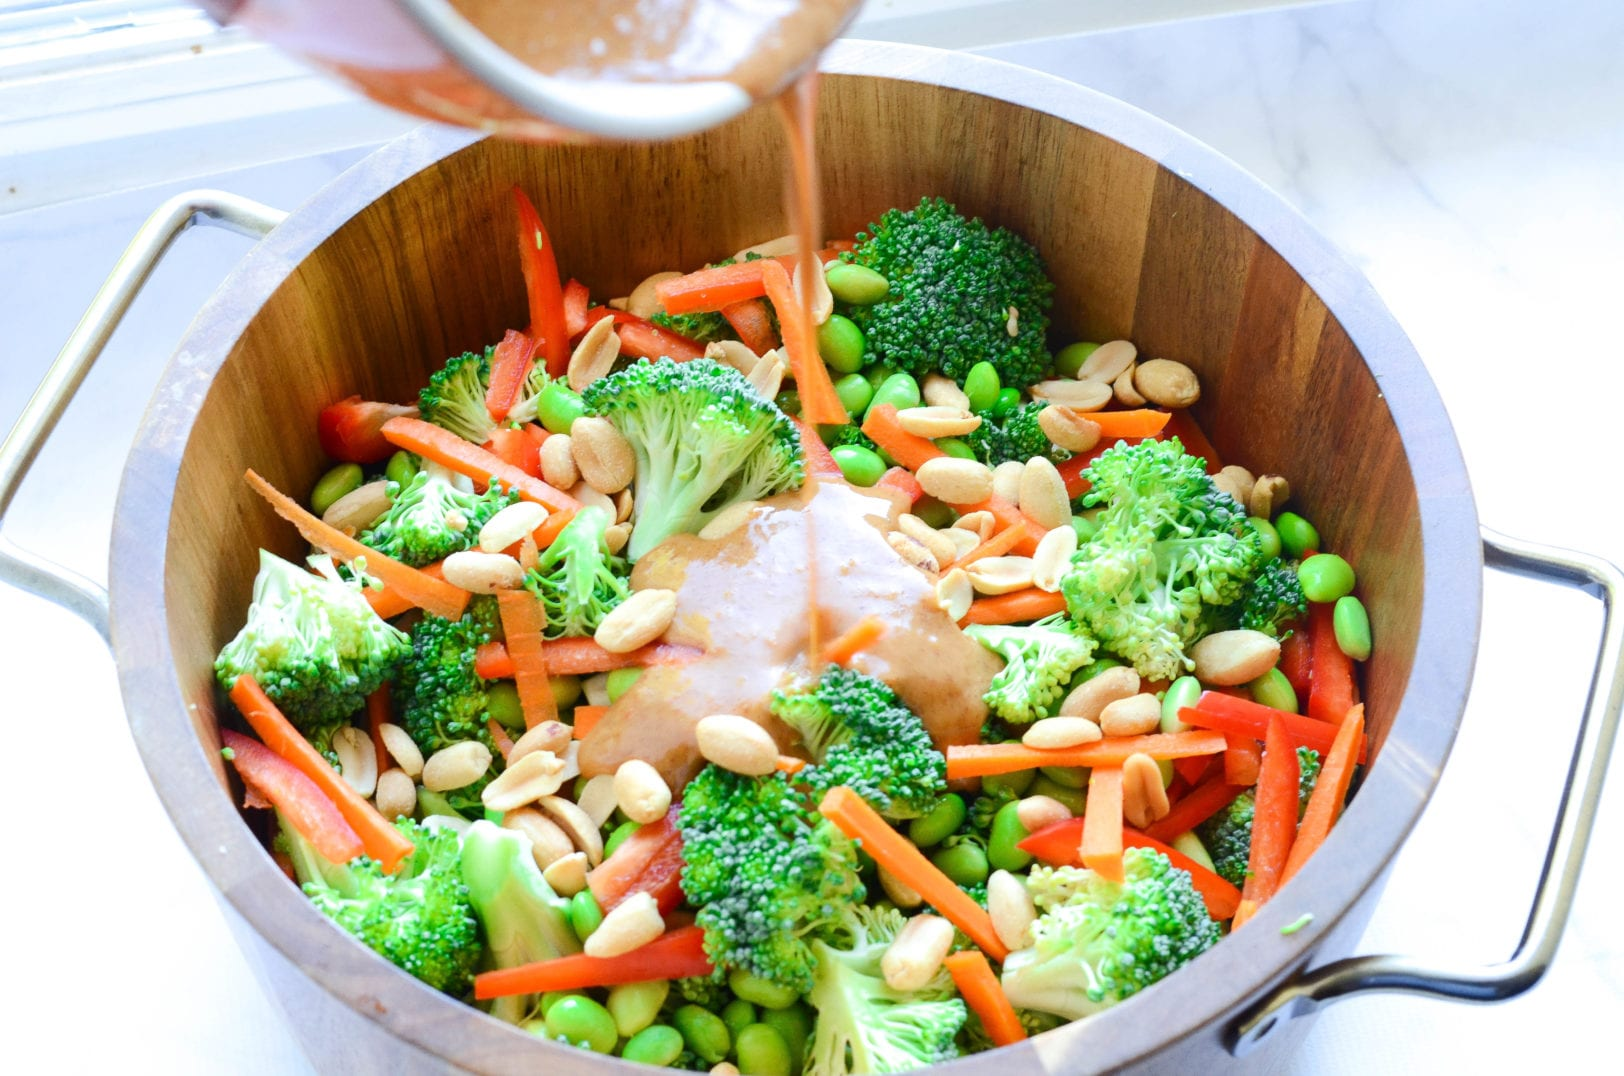 Thai Broccoli Salad With Spicy Almond Dressing